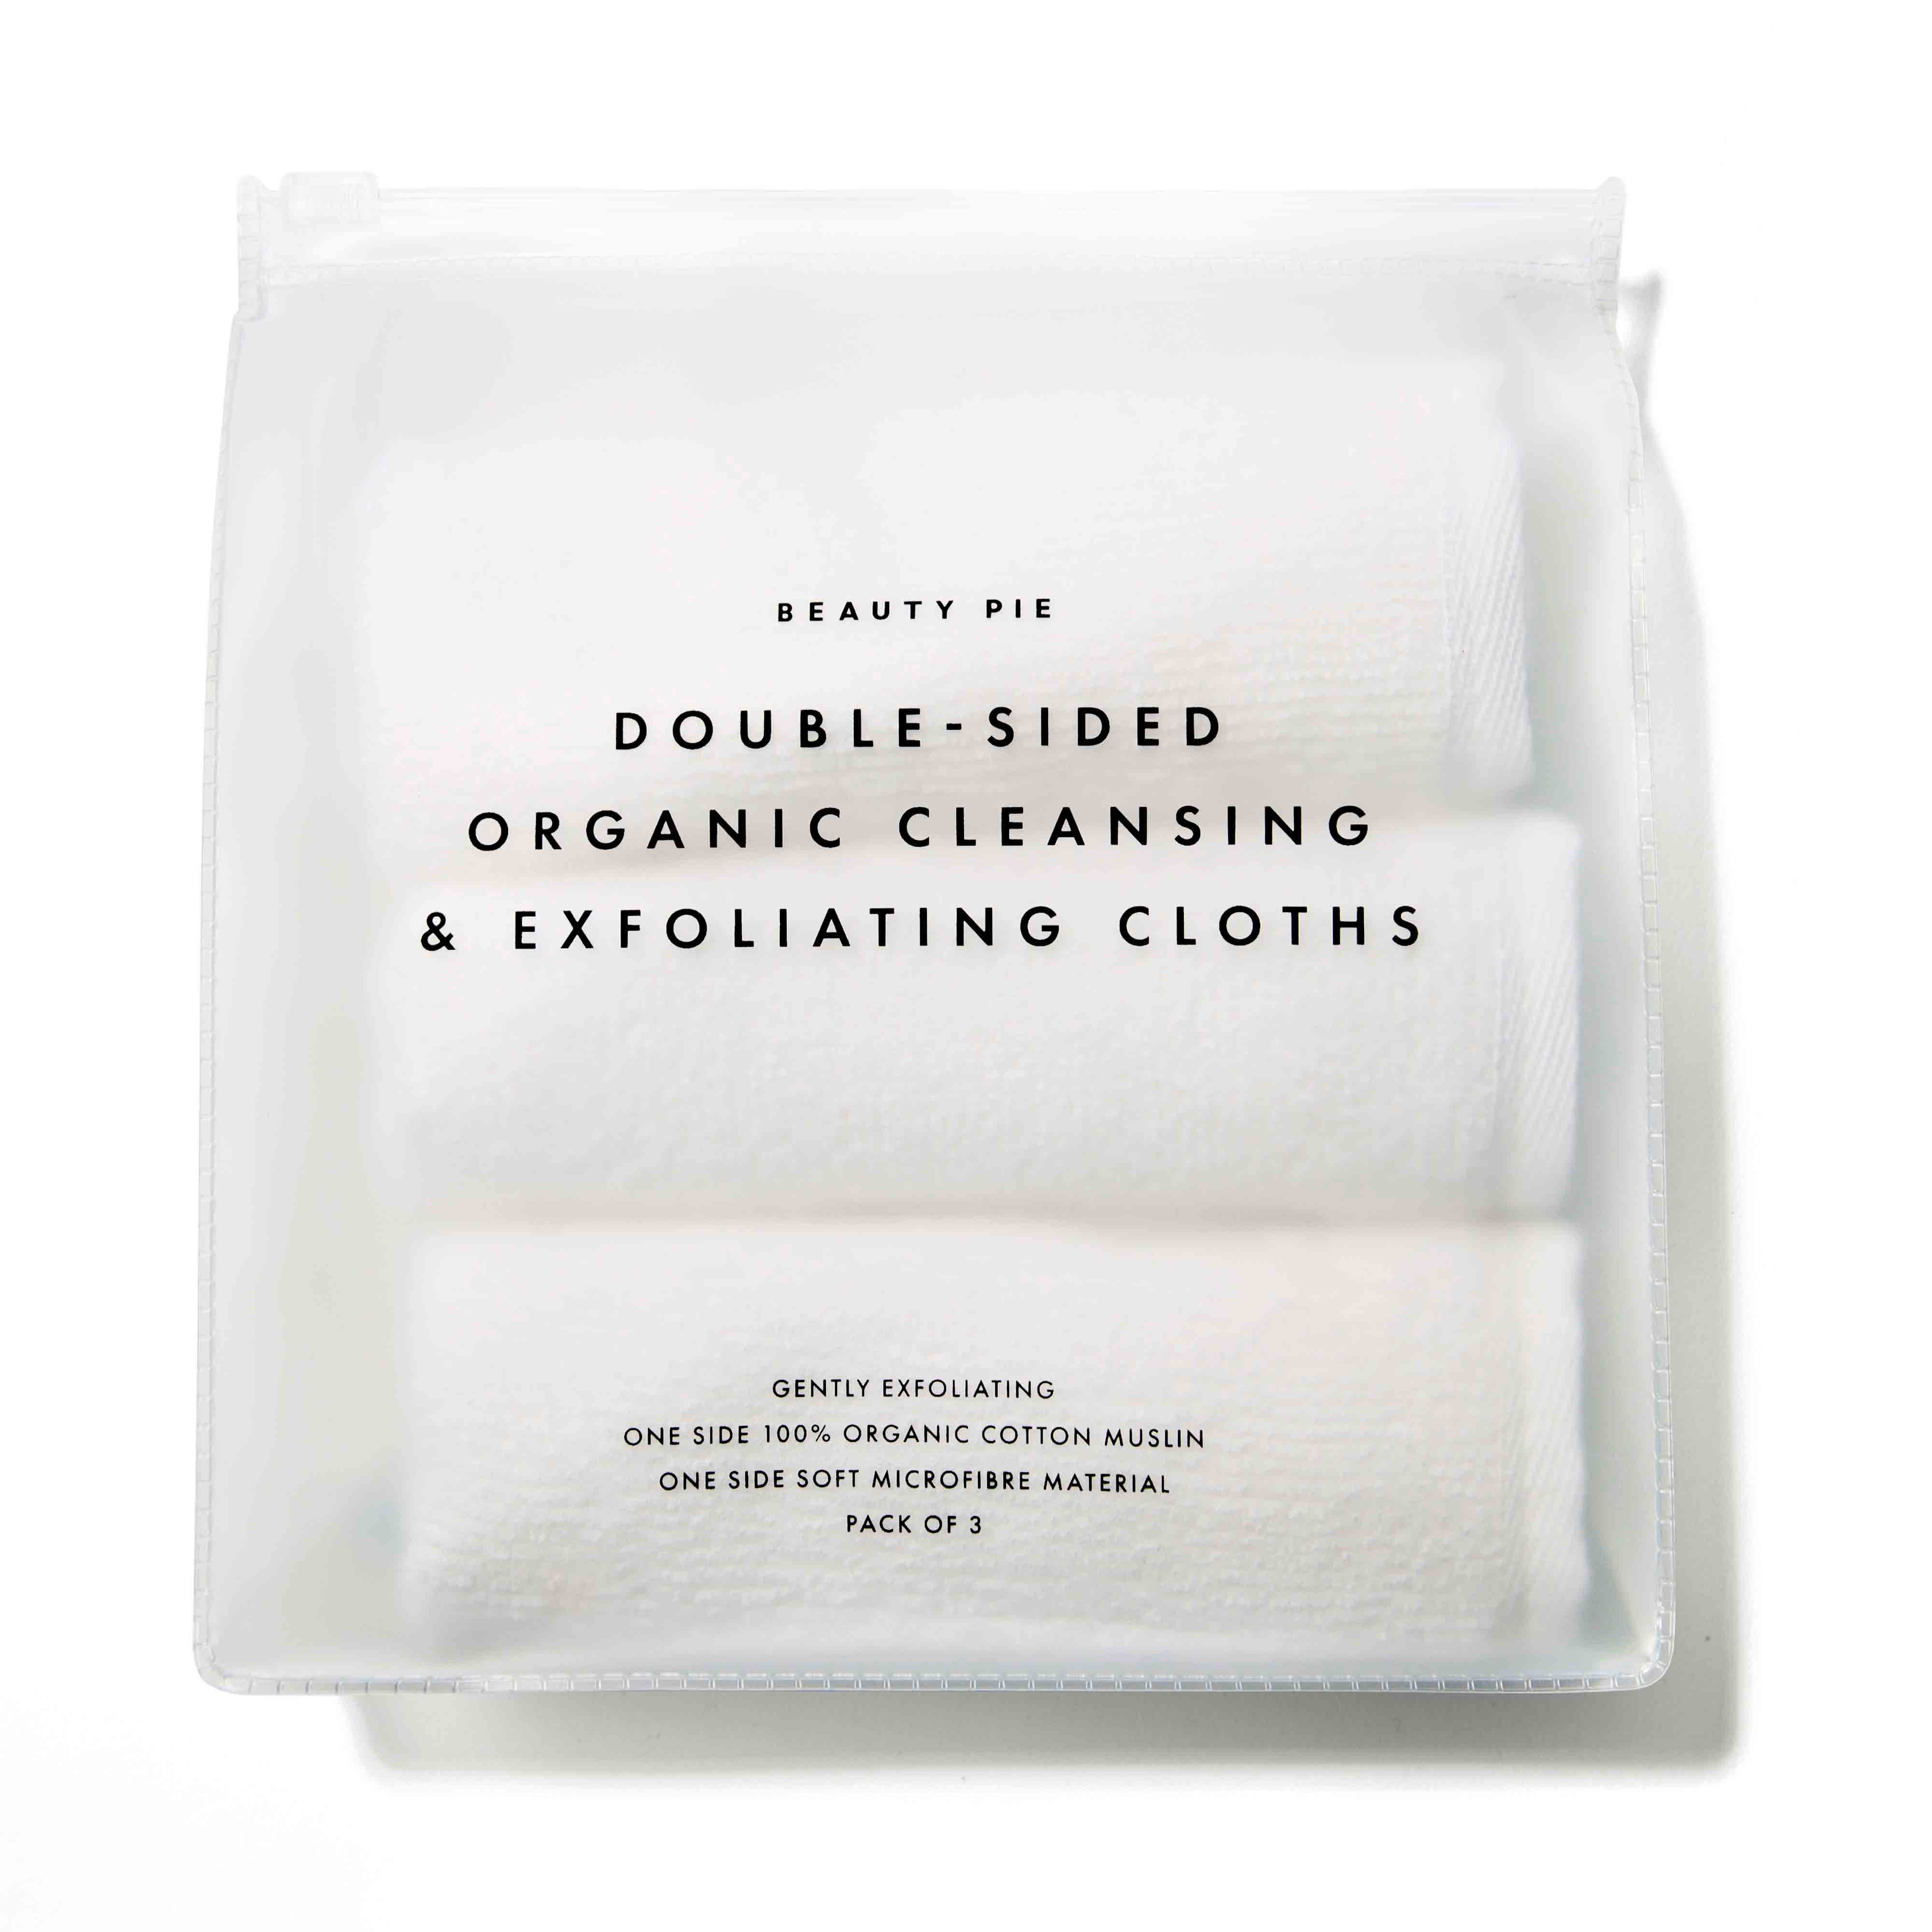 Double-Sided Organic Cleansing & Exfoliating Cloths by Beauty Pie